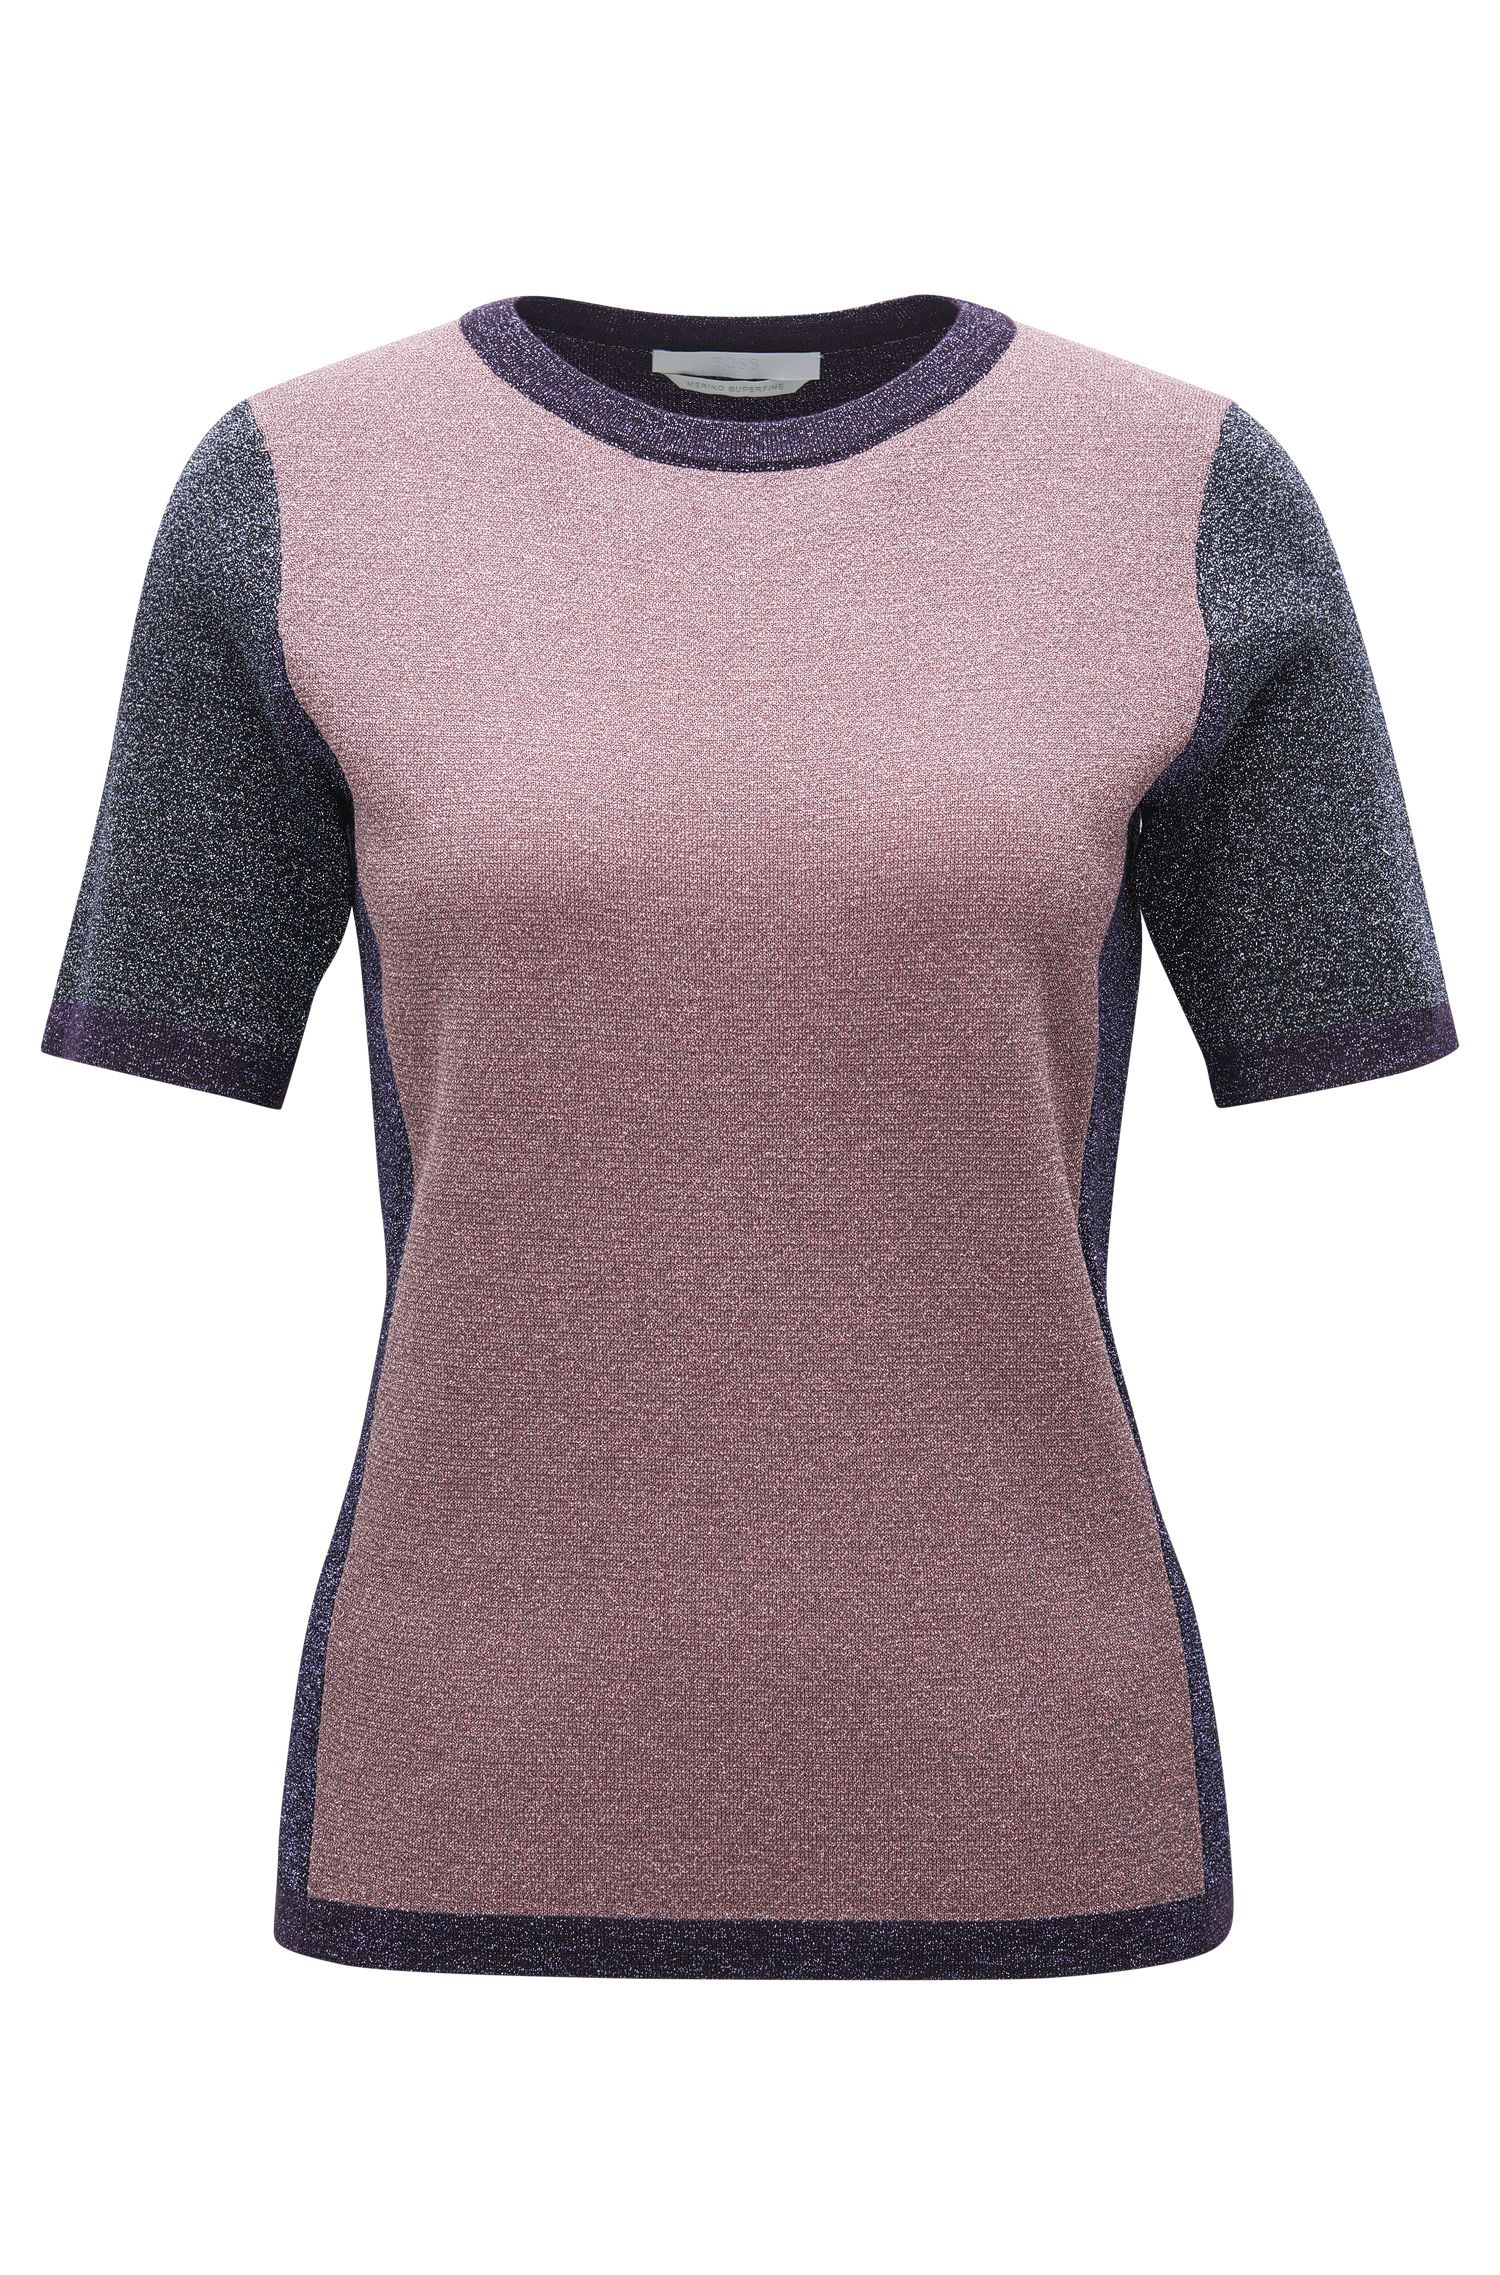 Colourblock top in a metallised wool blend